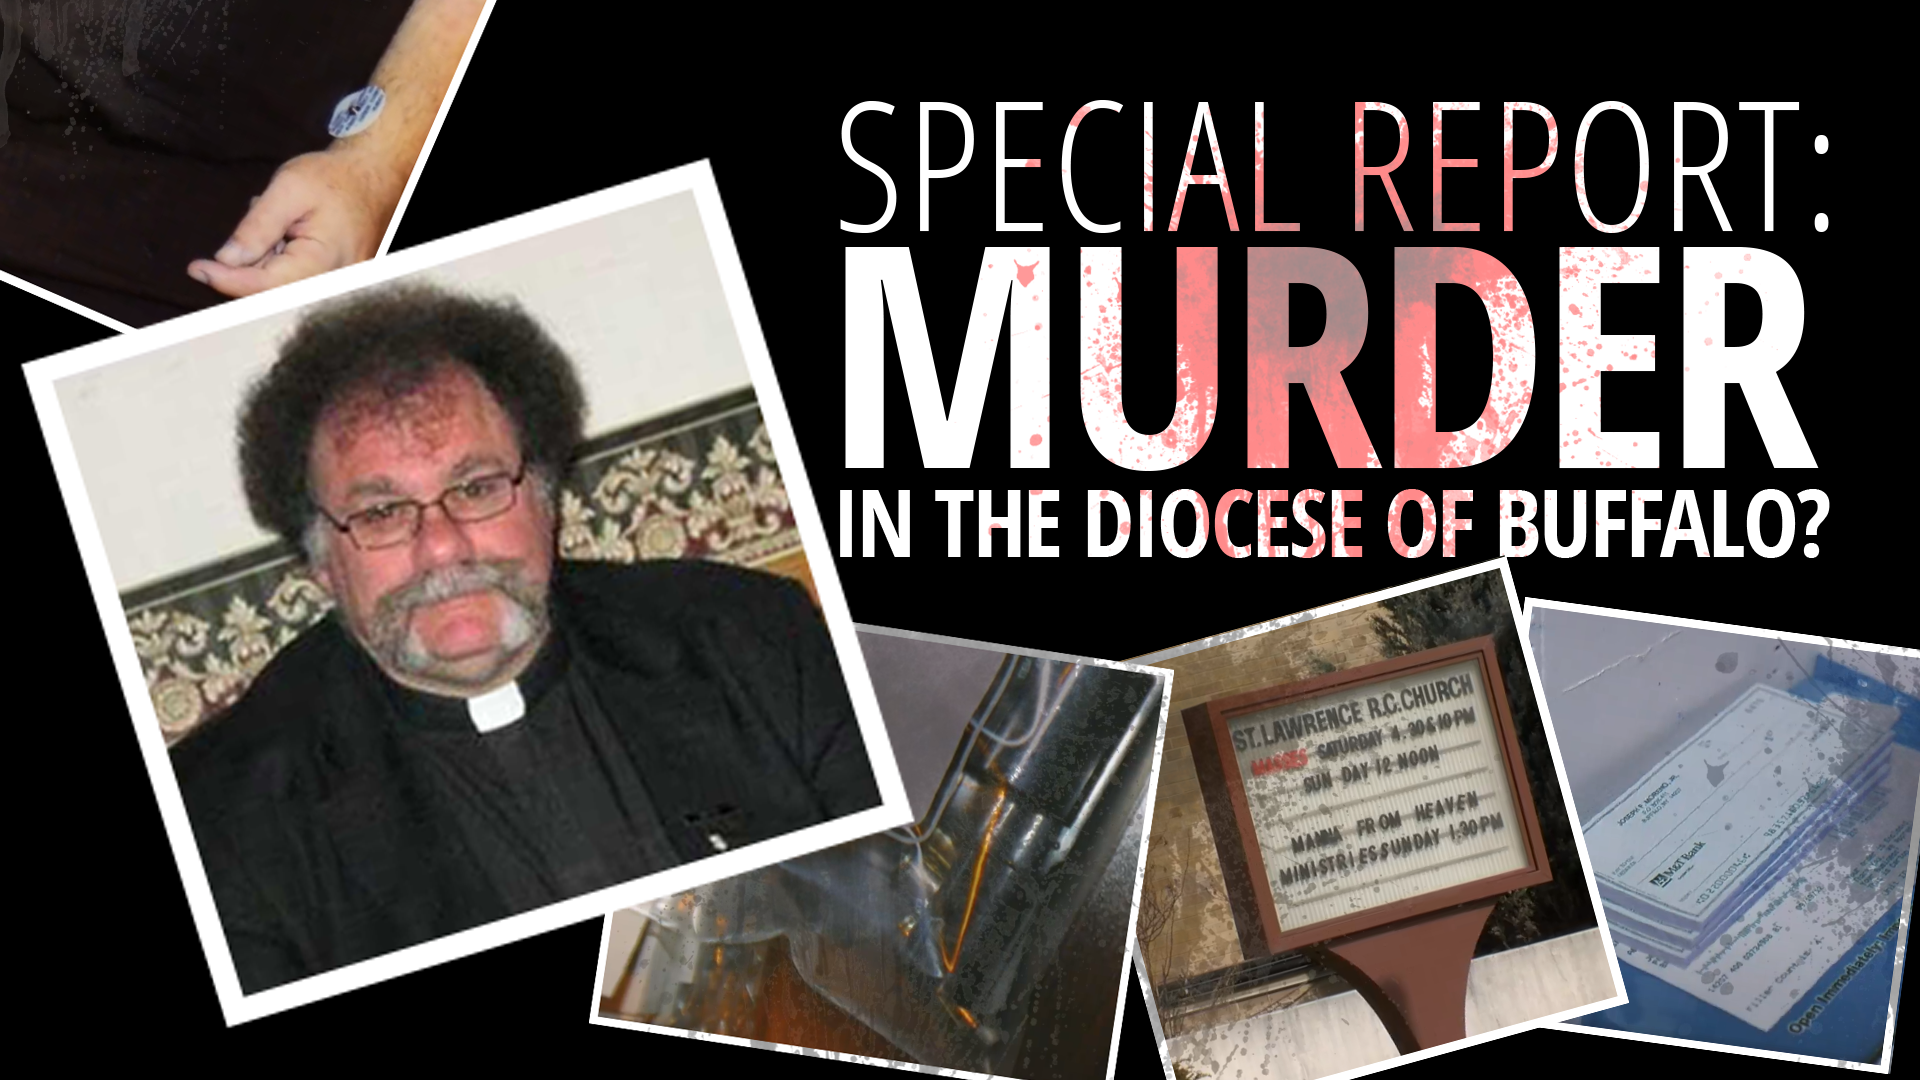 Special Report: Murder in the Diocese of Buffalo?